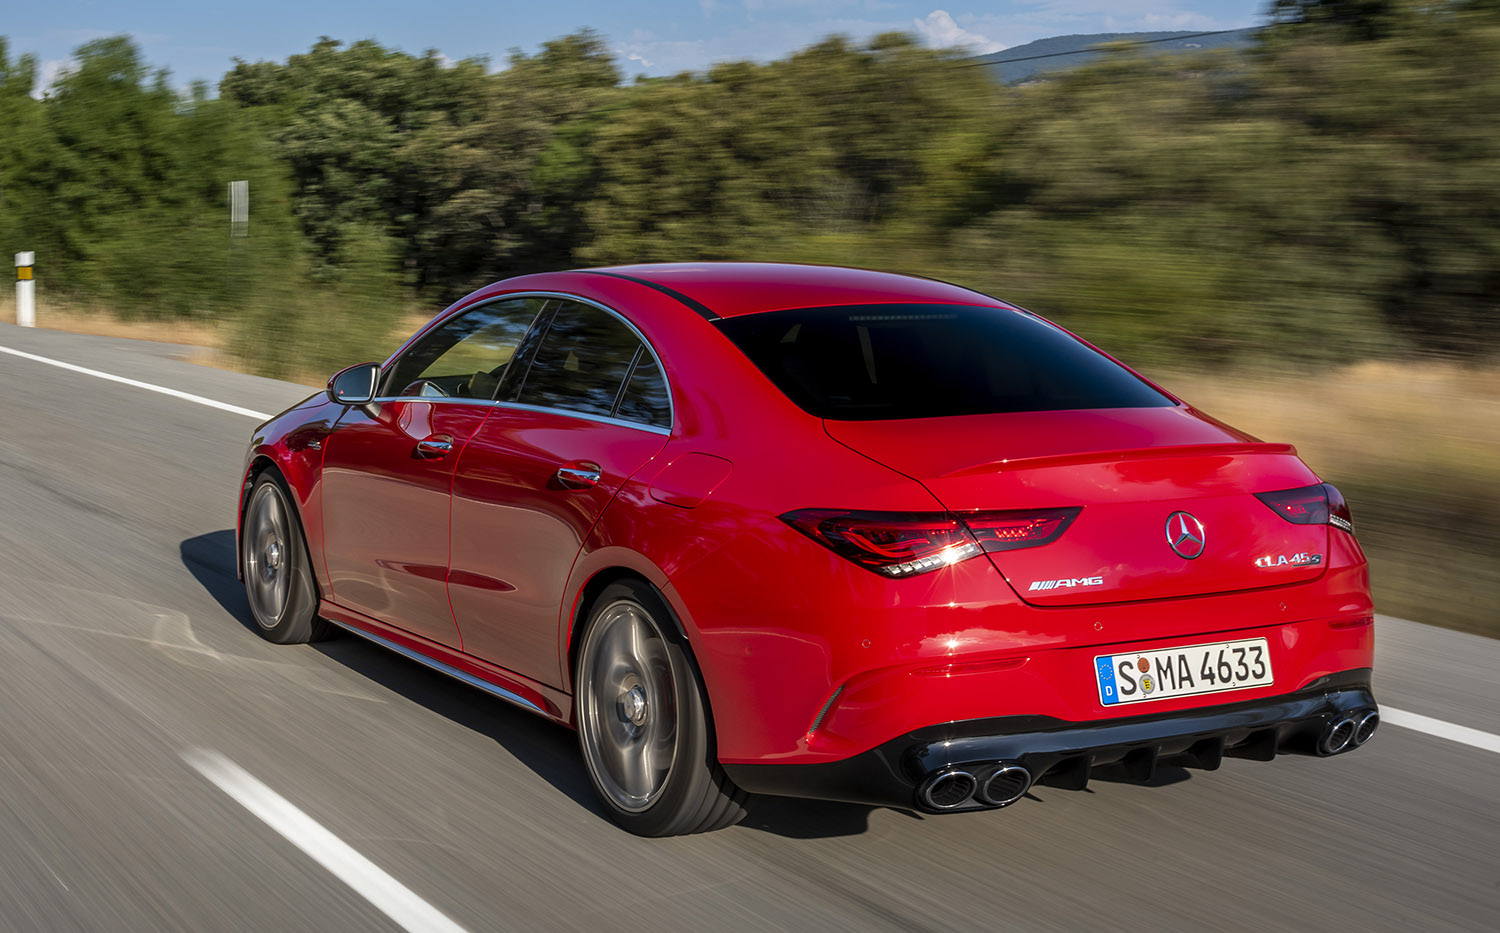 Mercedes Cla 45 Amg For Sale >> 2019 Mercedes Amg A45 S And Cla45 S First Drive Review